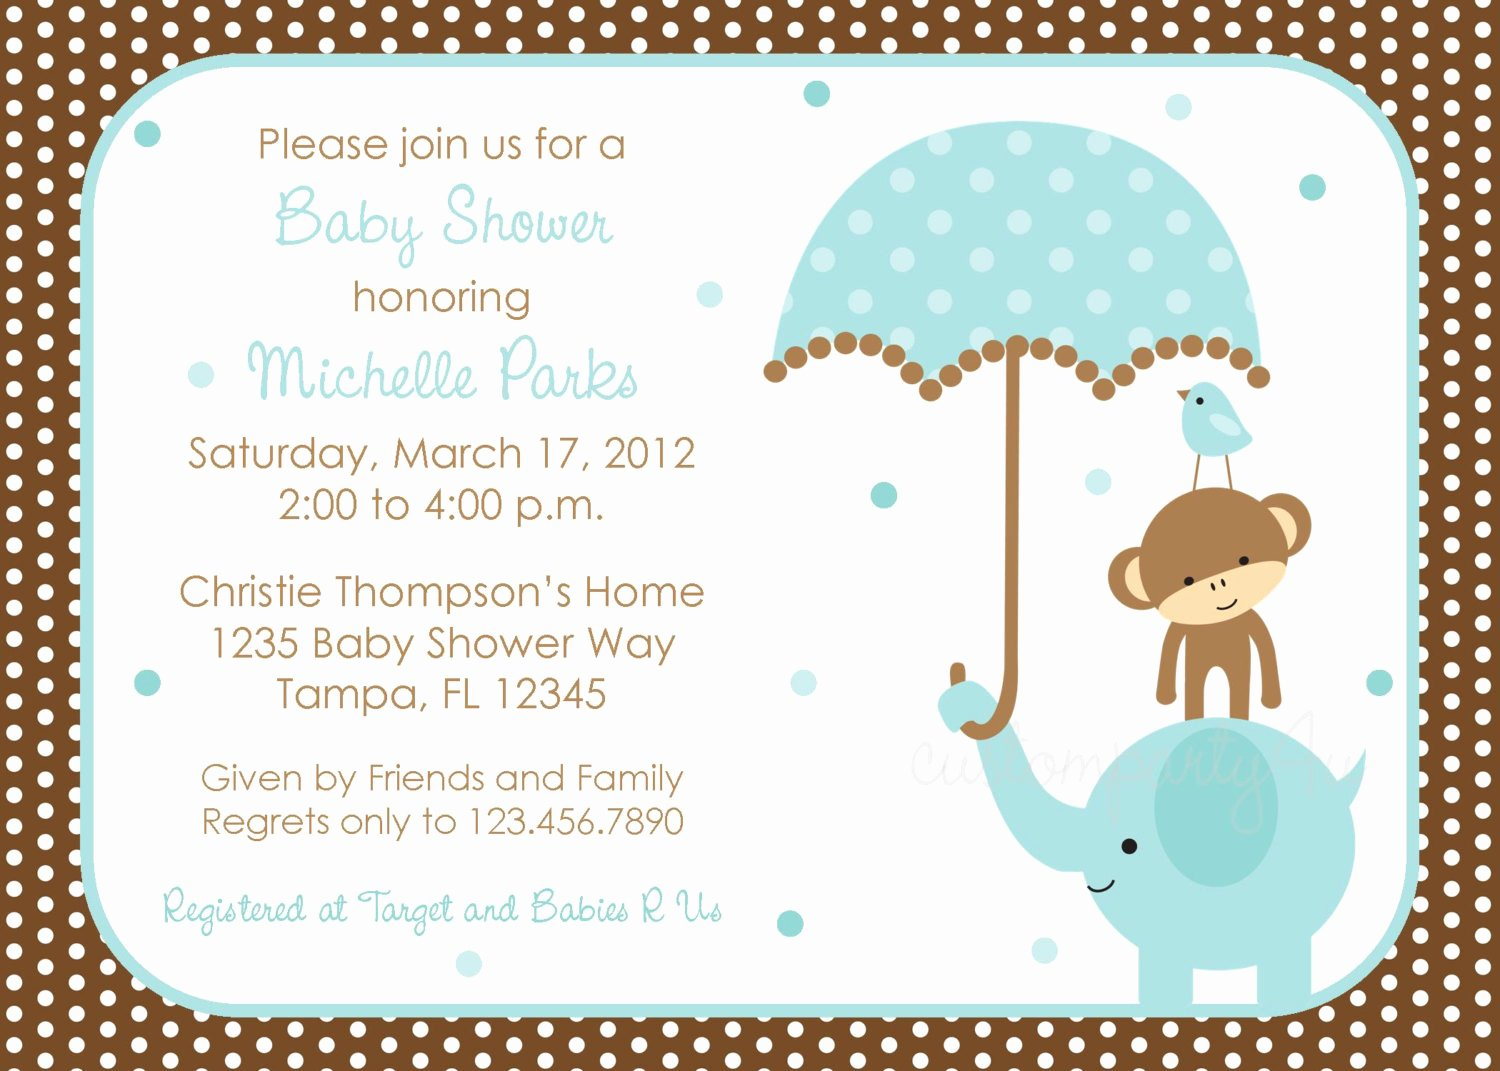 Downloadable Baby Shower Invitation Templates Luxury Free Baby Boy Shower Invitations Templates Baby Boy